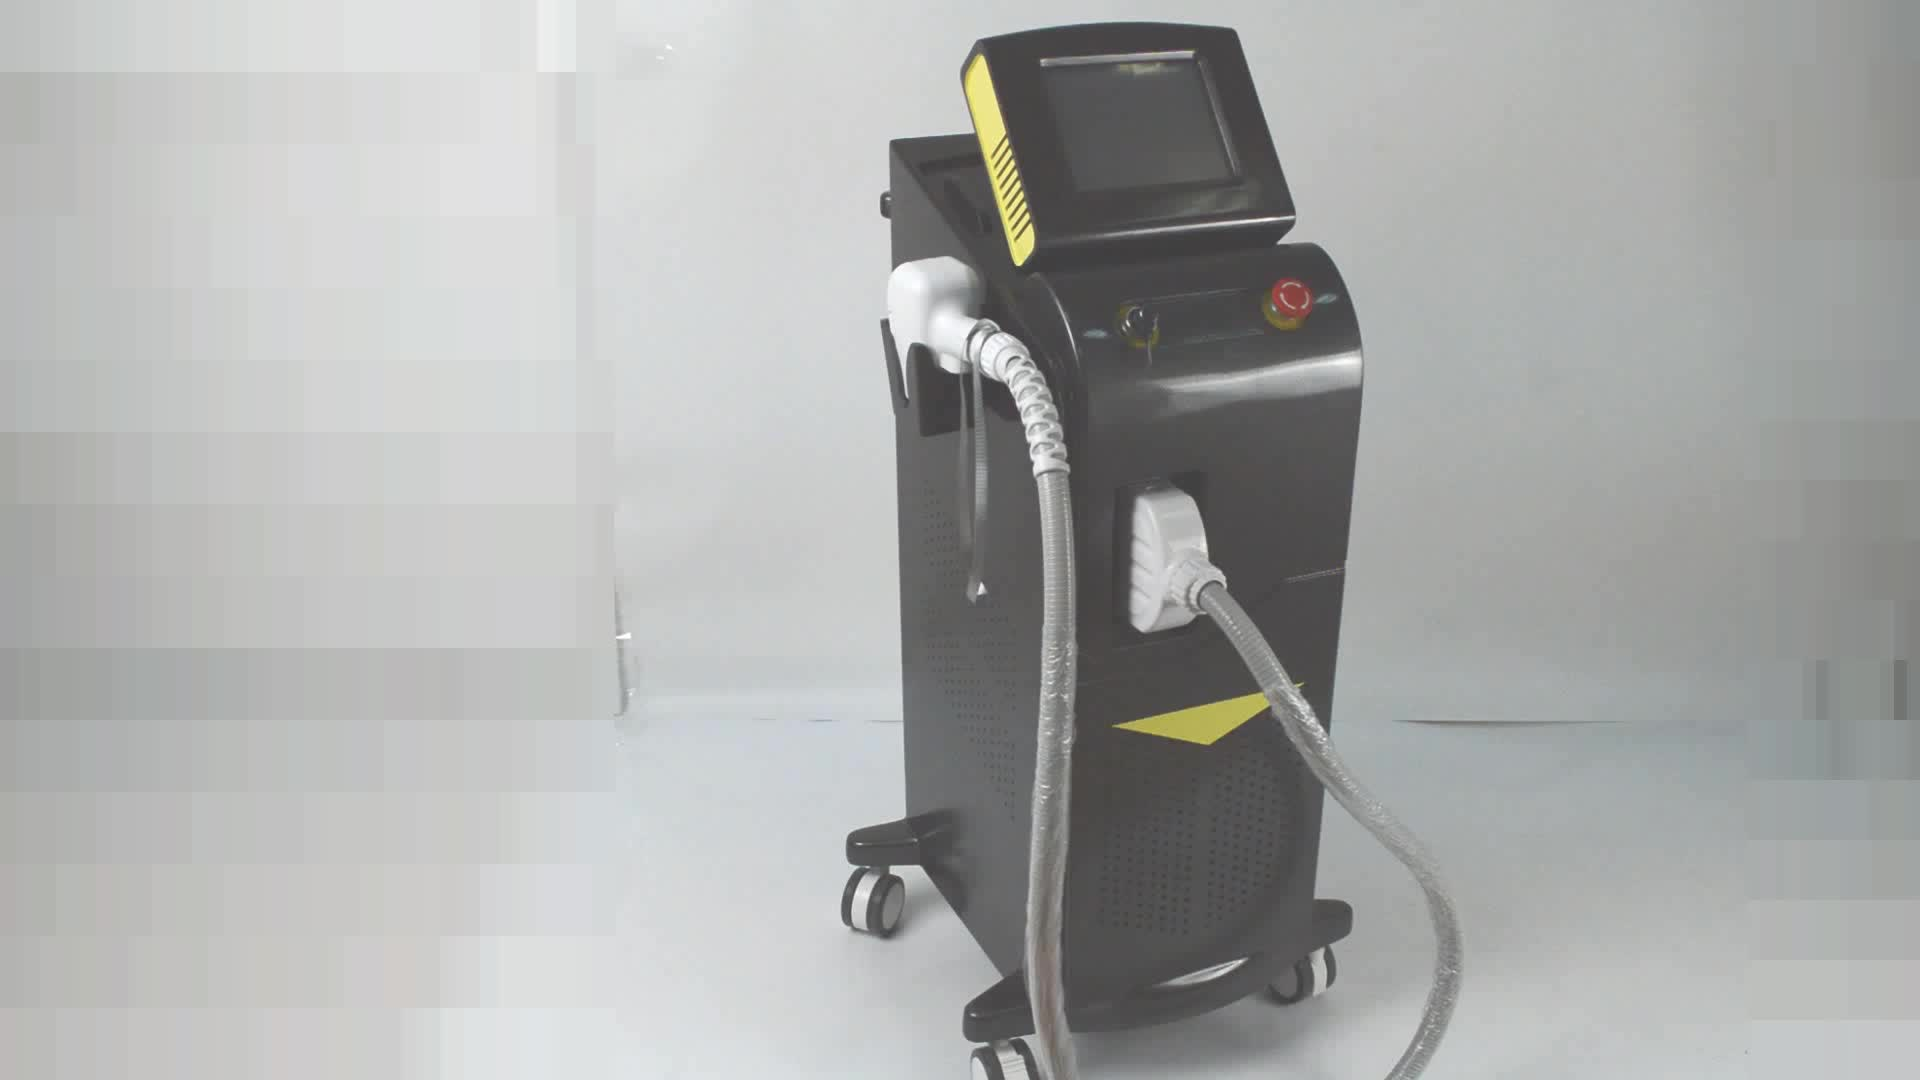 Candela laser hair removal alexandrite soprano ice alma laser for hair removal of all skin type